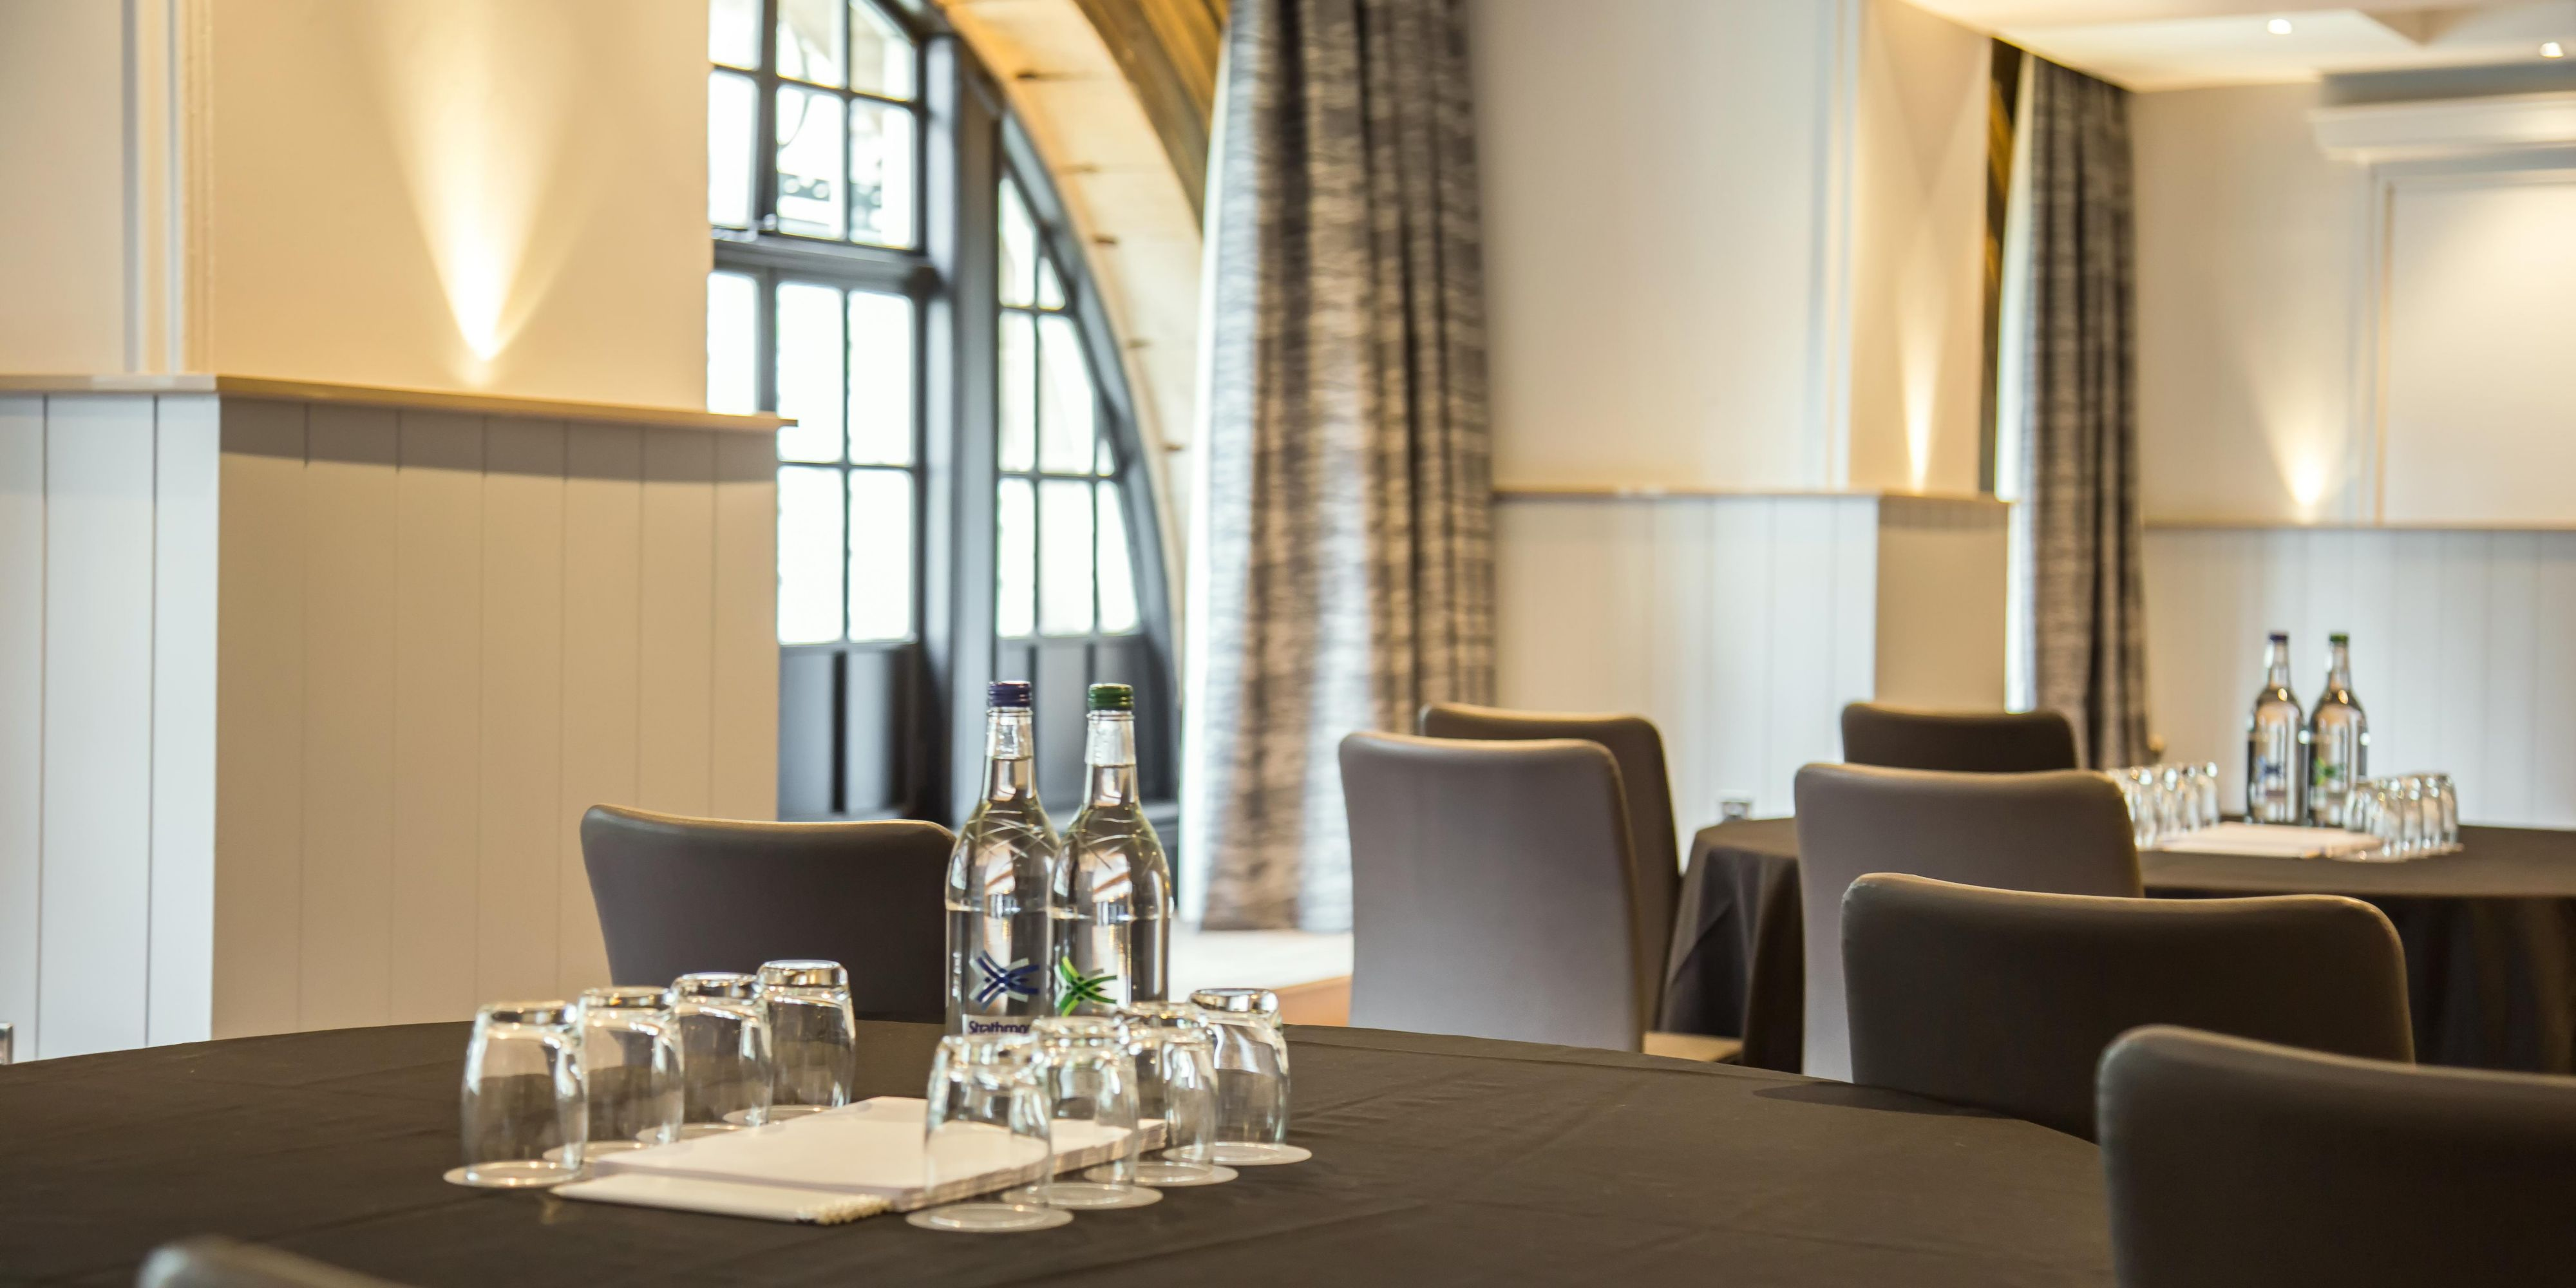 Spacious with natural daylight, the Victoria is ideal for meetings